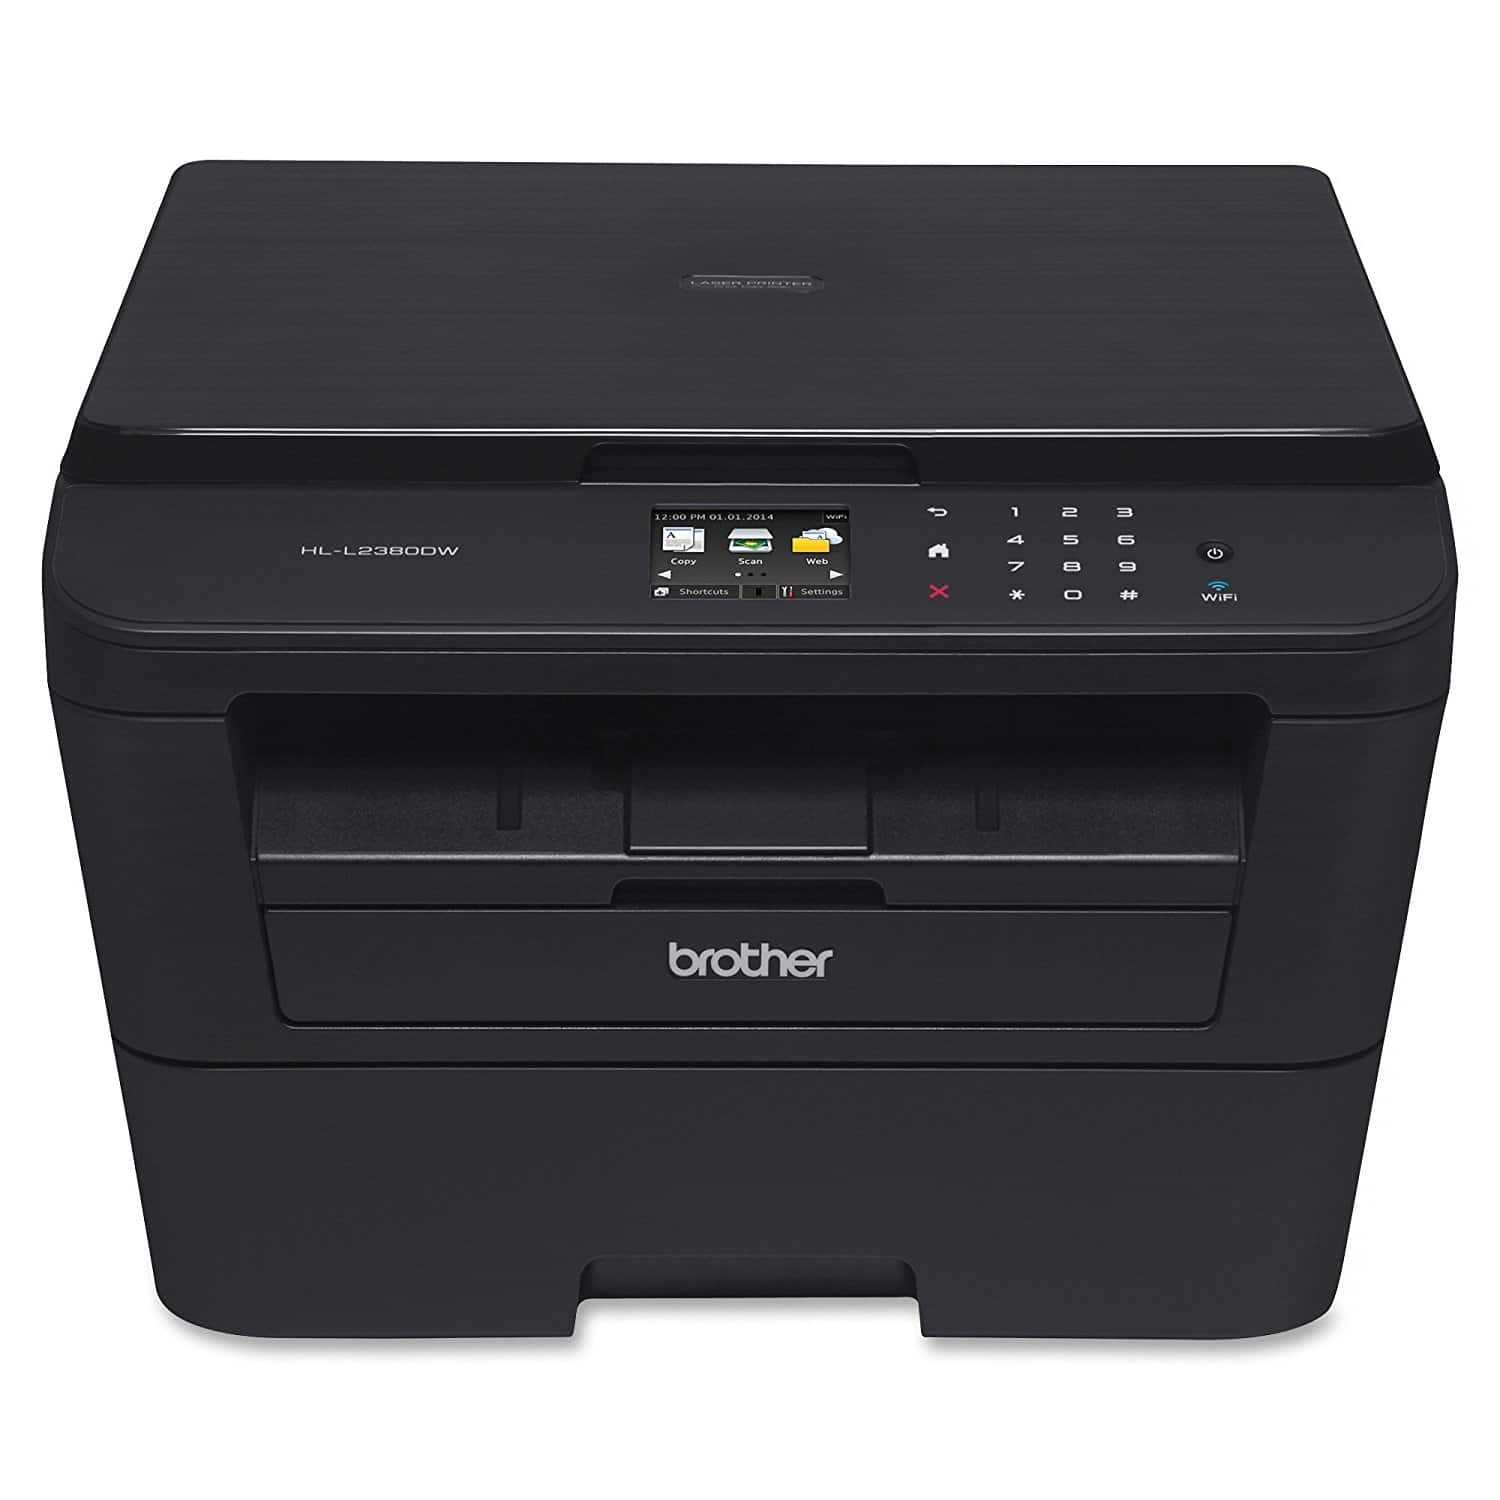 Brother HL-L2380DW Wireless Monochrome Laser Printer $91.99